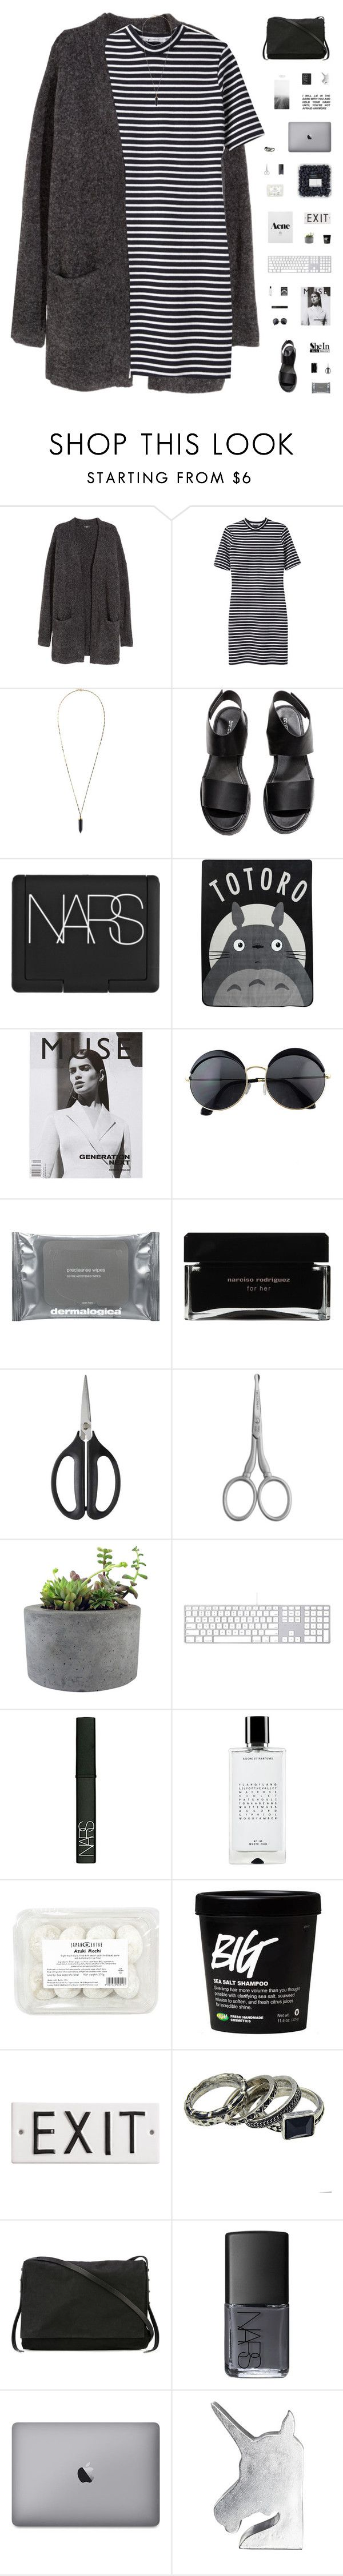 """FRAGILE"" by c-hristinep ❤ liked on Polyvore featuring H&M, T By Alexander Wang, Isabel Marant, NARS Cosmetics, Ghibli, Dermalogica, Narciso Rodriguez, OXO, Tweezerman and Rough Fusion"